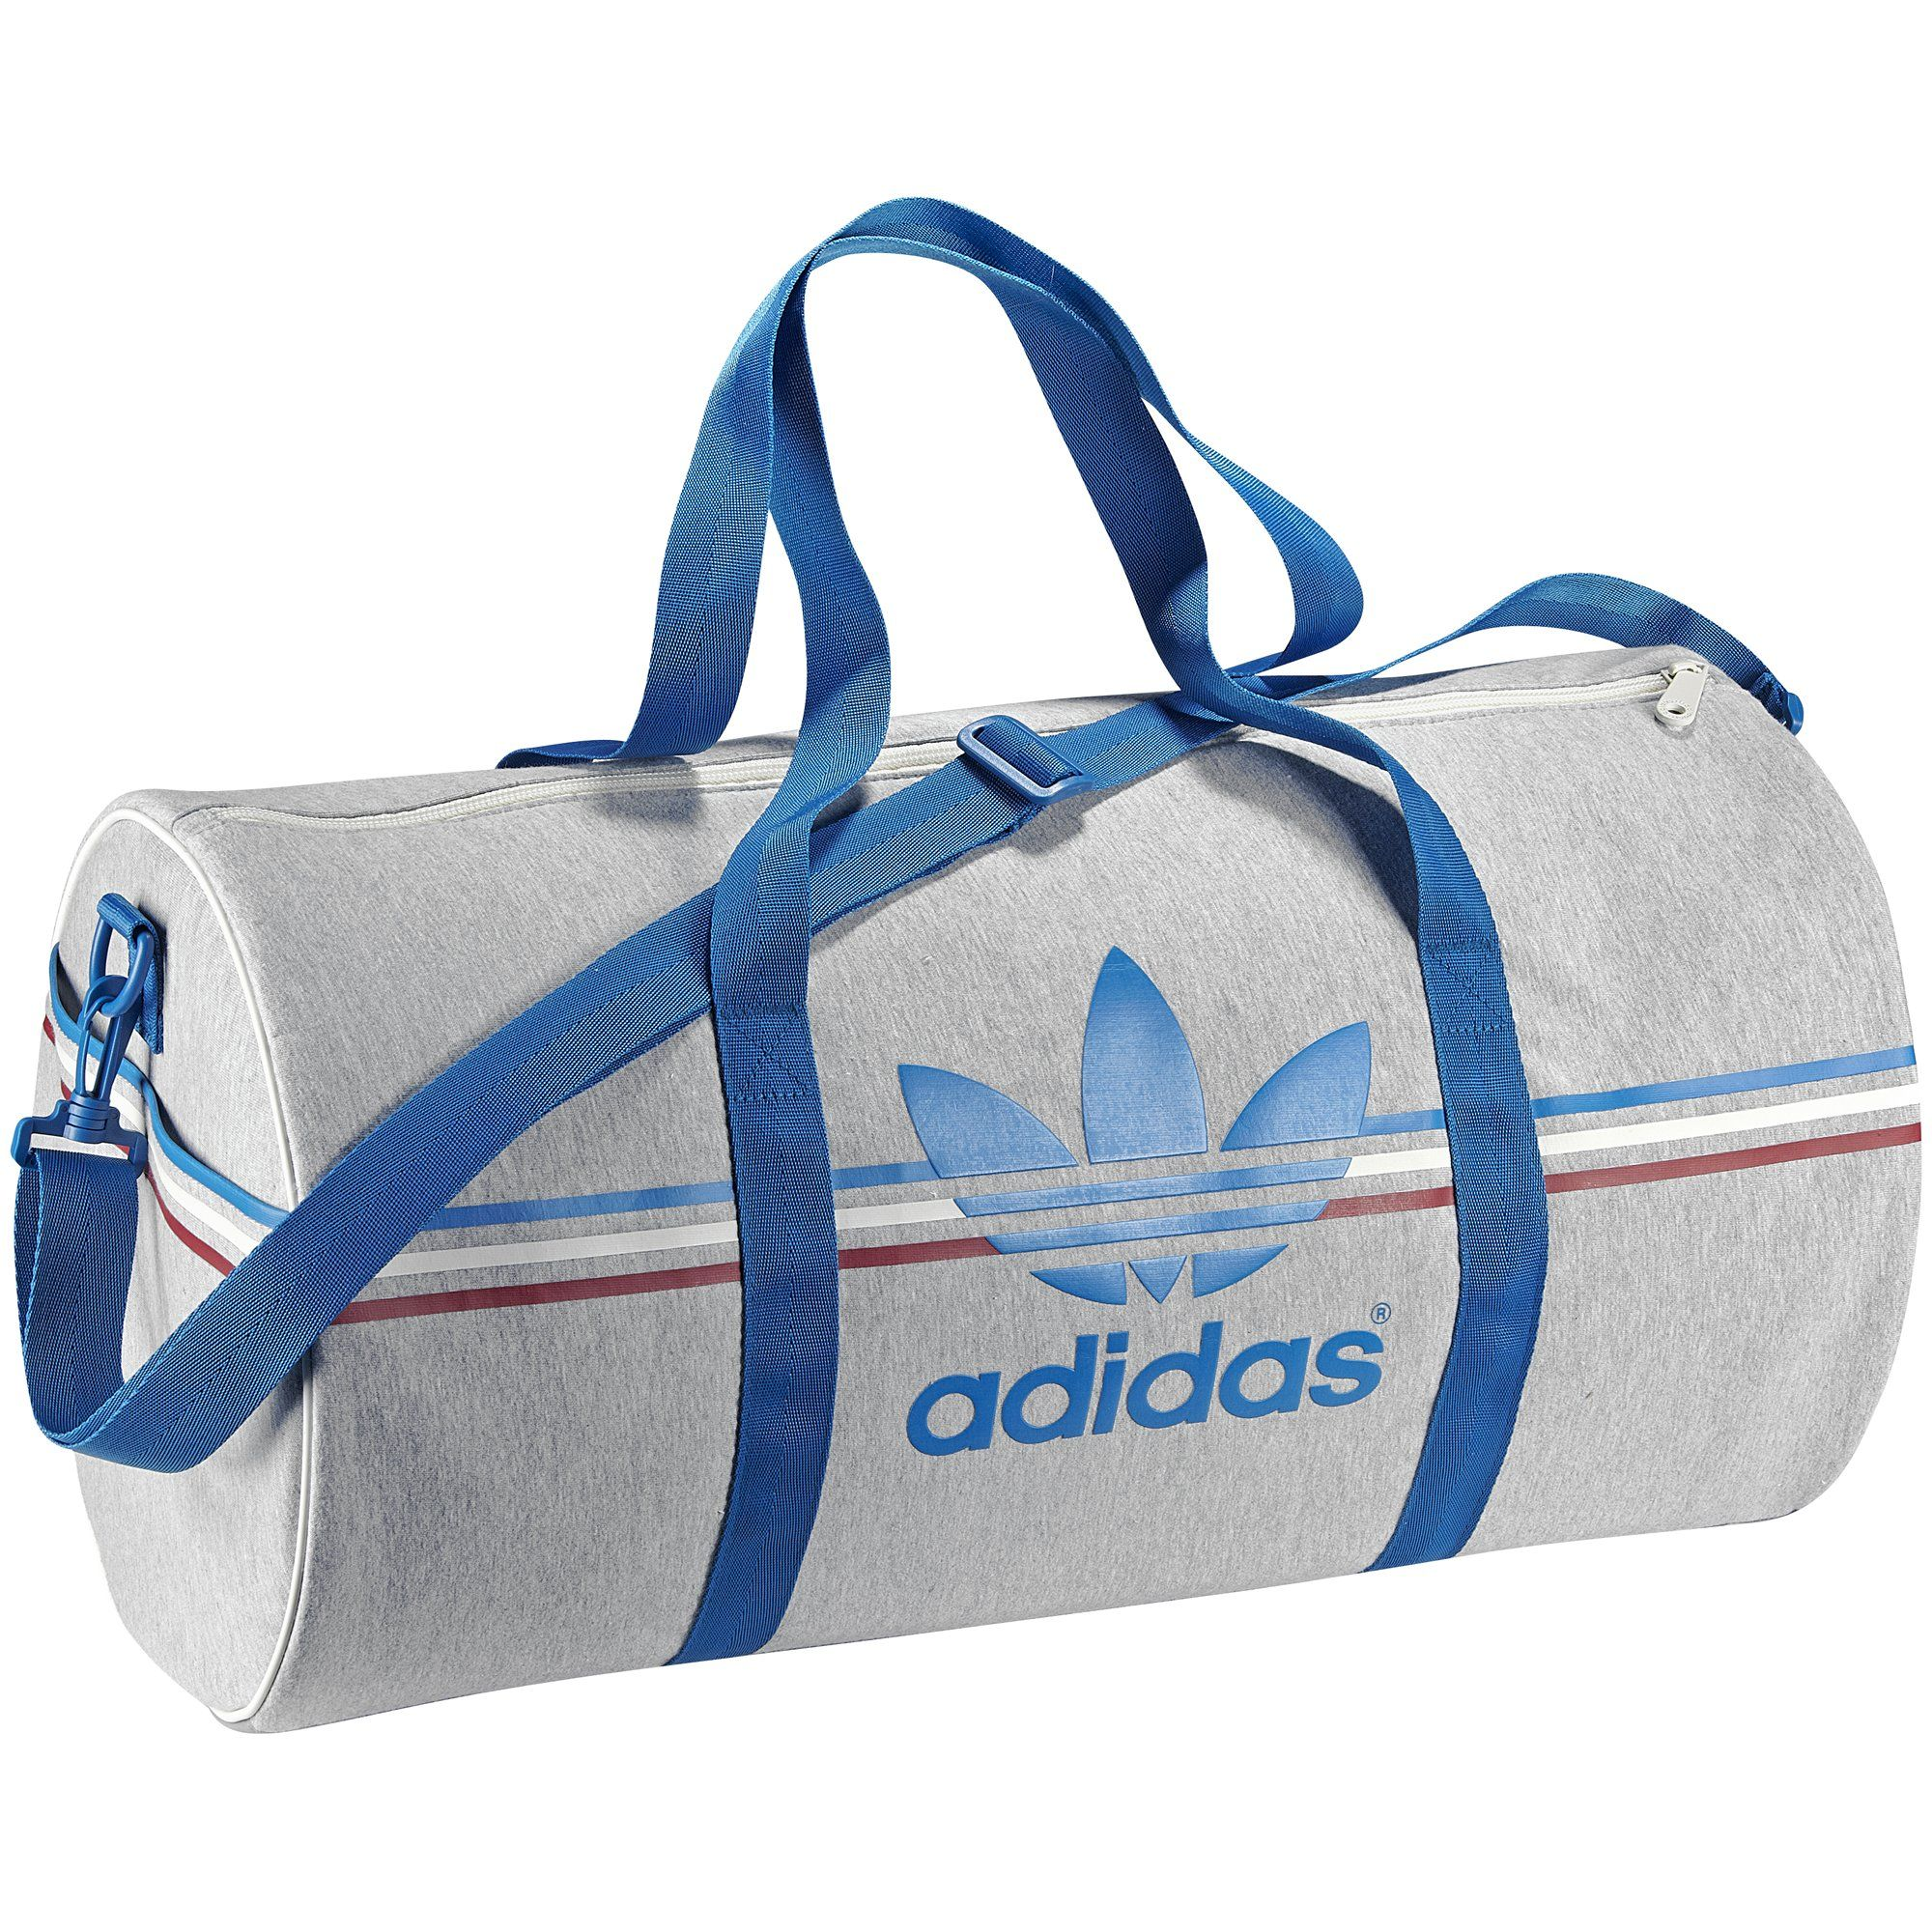 adidas gym bag adidas store shop adidas for the latest. Black Bedroom Furniture Sets. Home Design Ideas